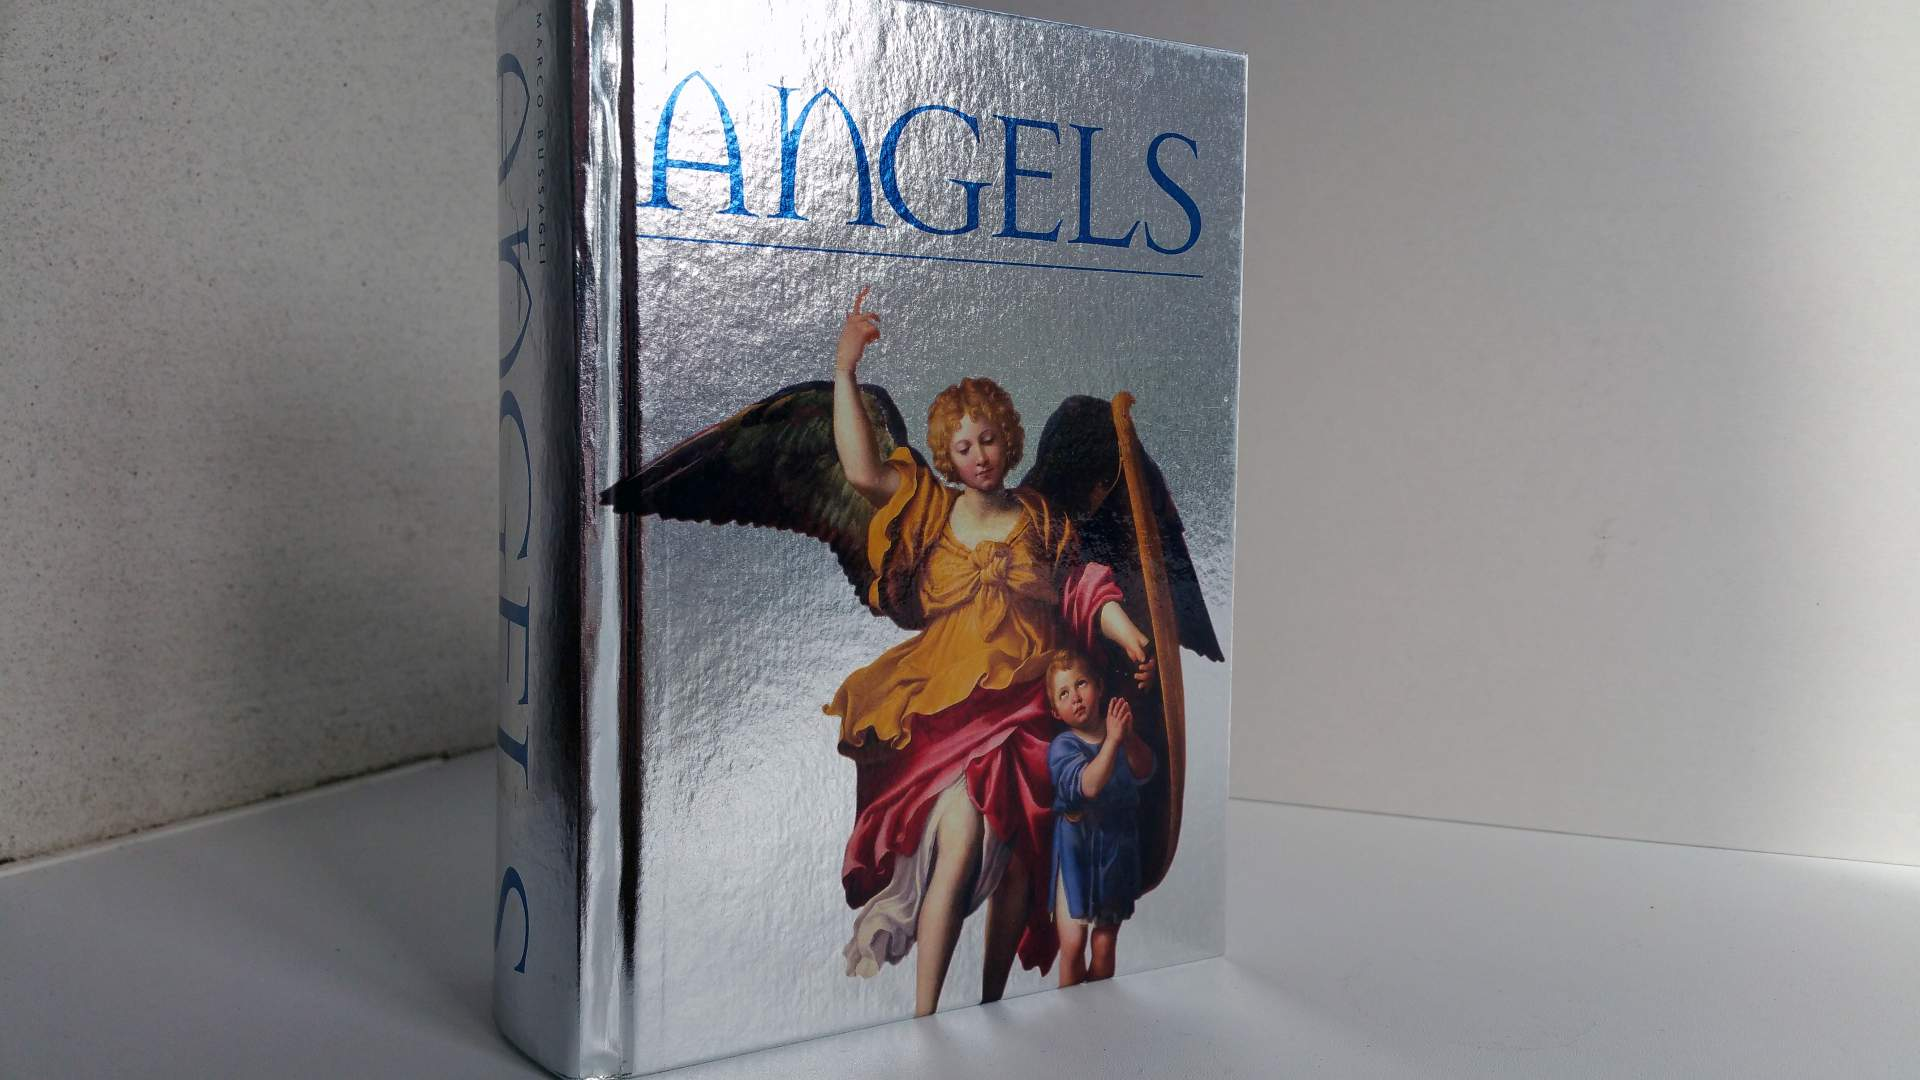 Andělé (Angels) – Marco Bussagli